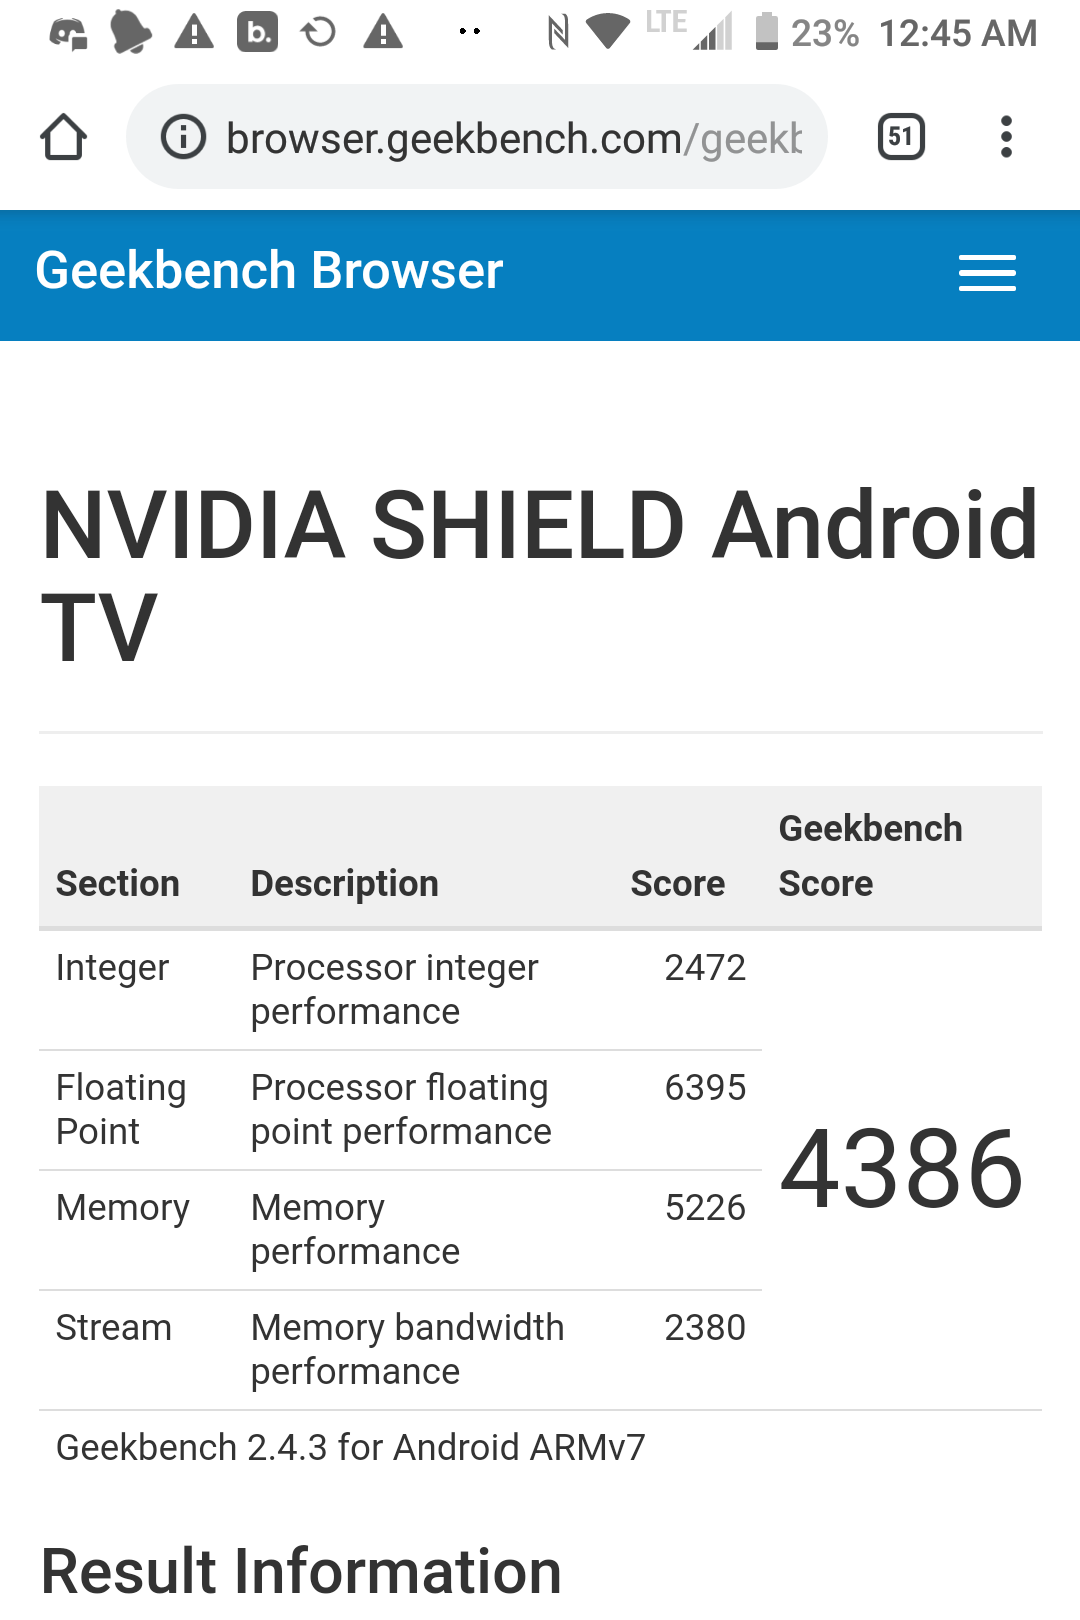 SOLVED) Possible to install geekbench in Coreelec environment